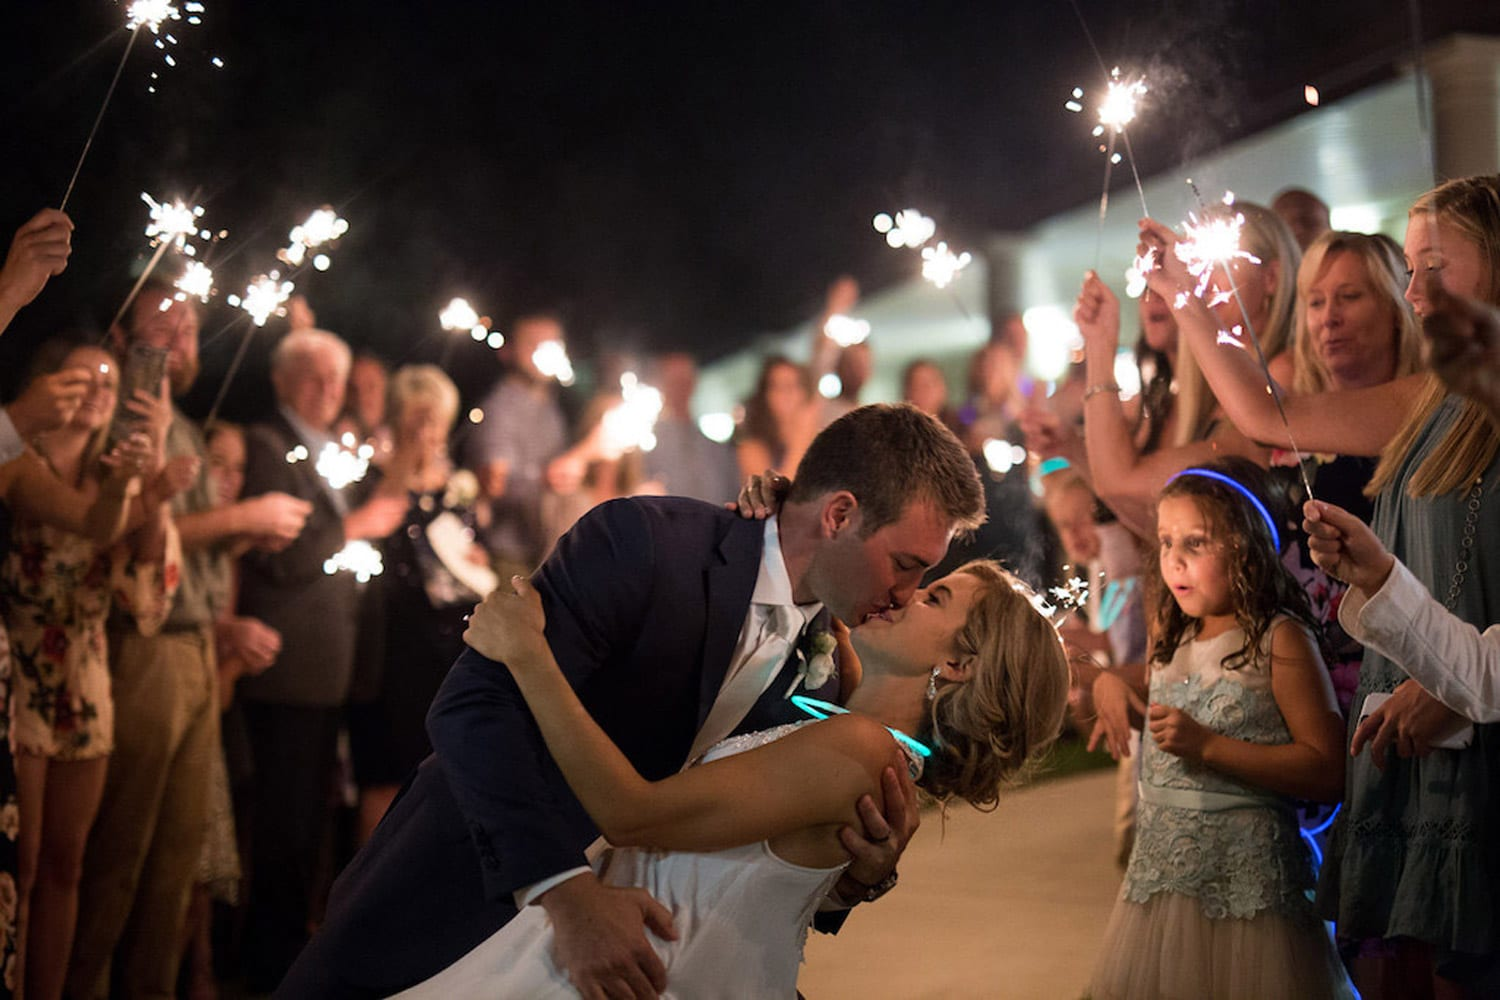 Groom kisses bride during send-off with color lights